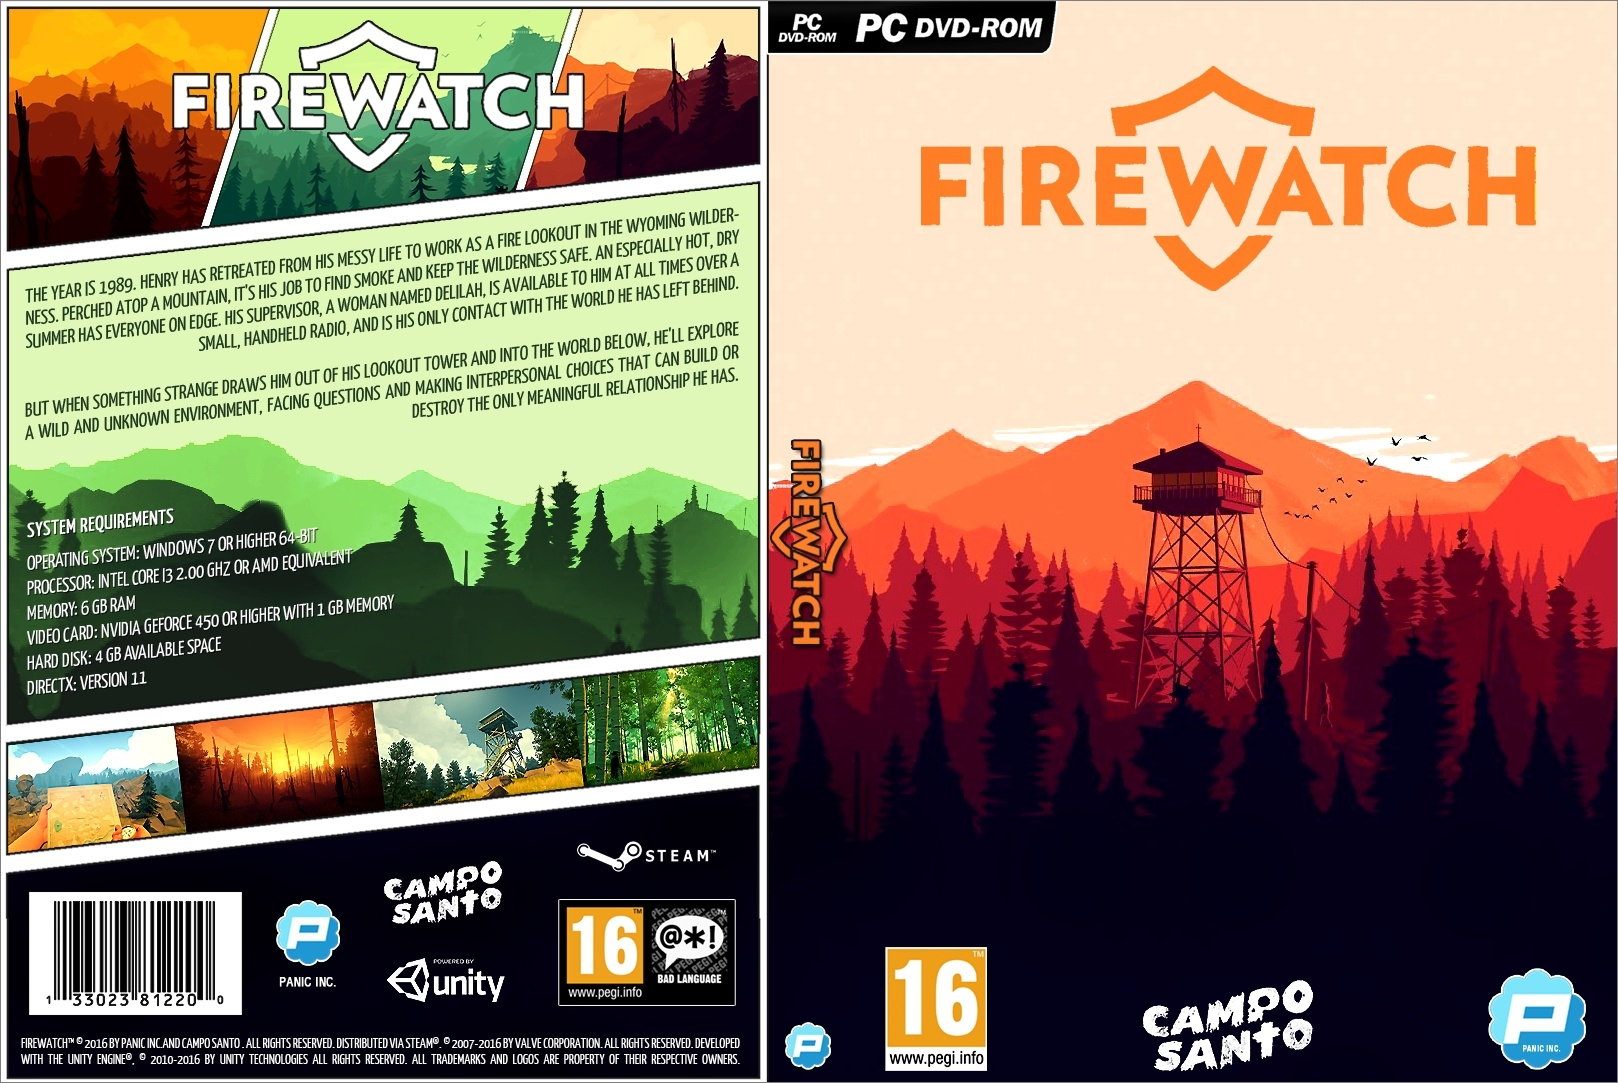 video view building relationship firewatch